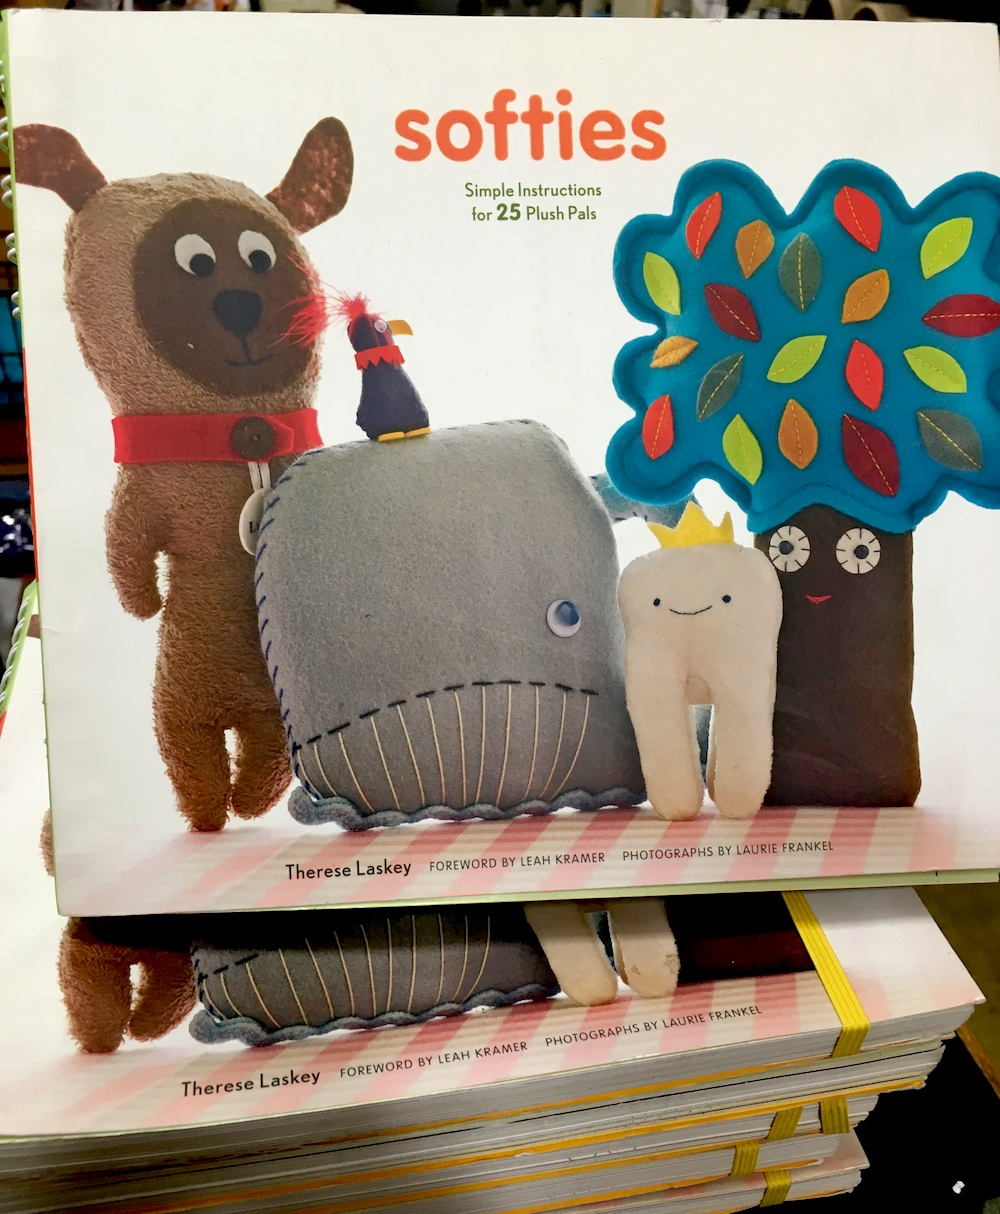 A stack of books, Softies by Therese Laskey